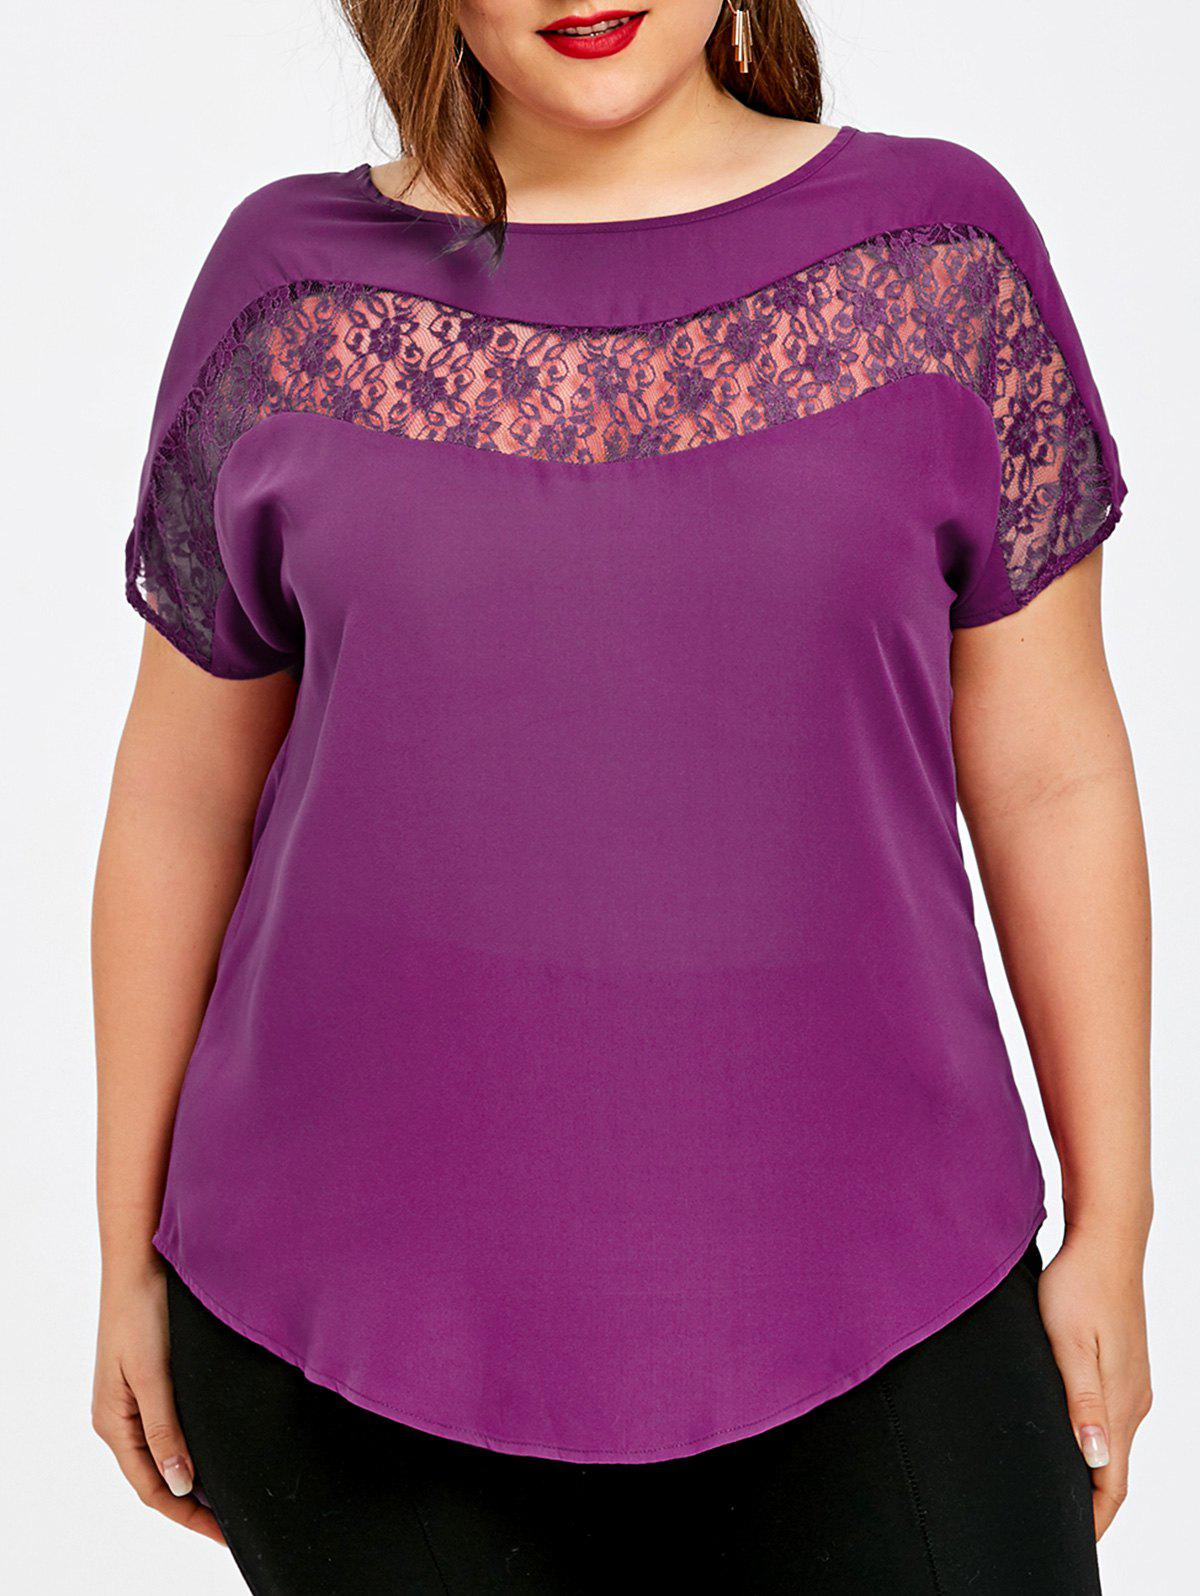 Plus Size Lace Trim Curved Hem Blouse - PURPLE XL